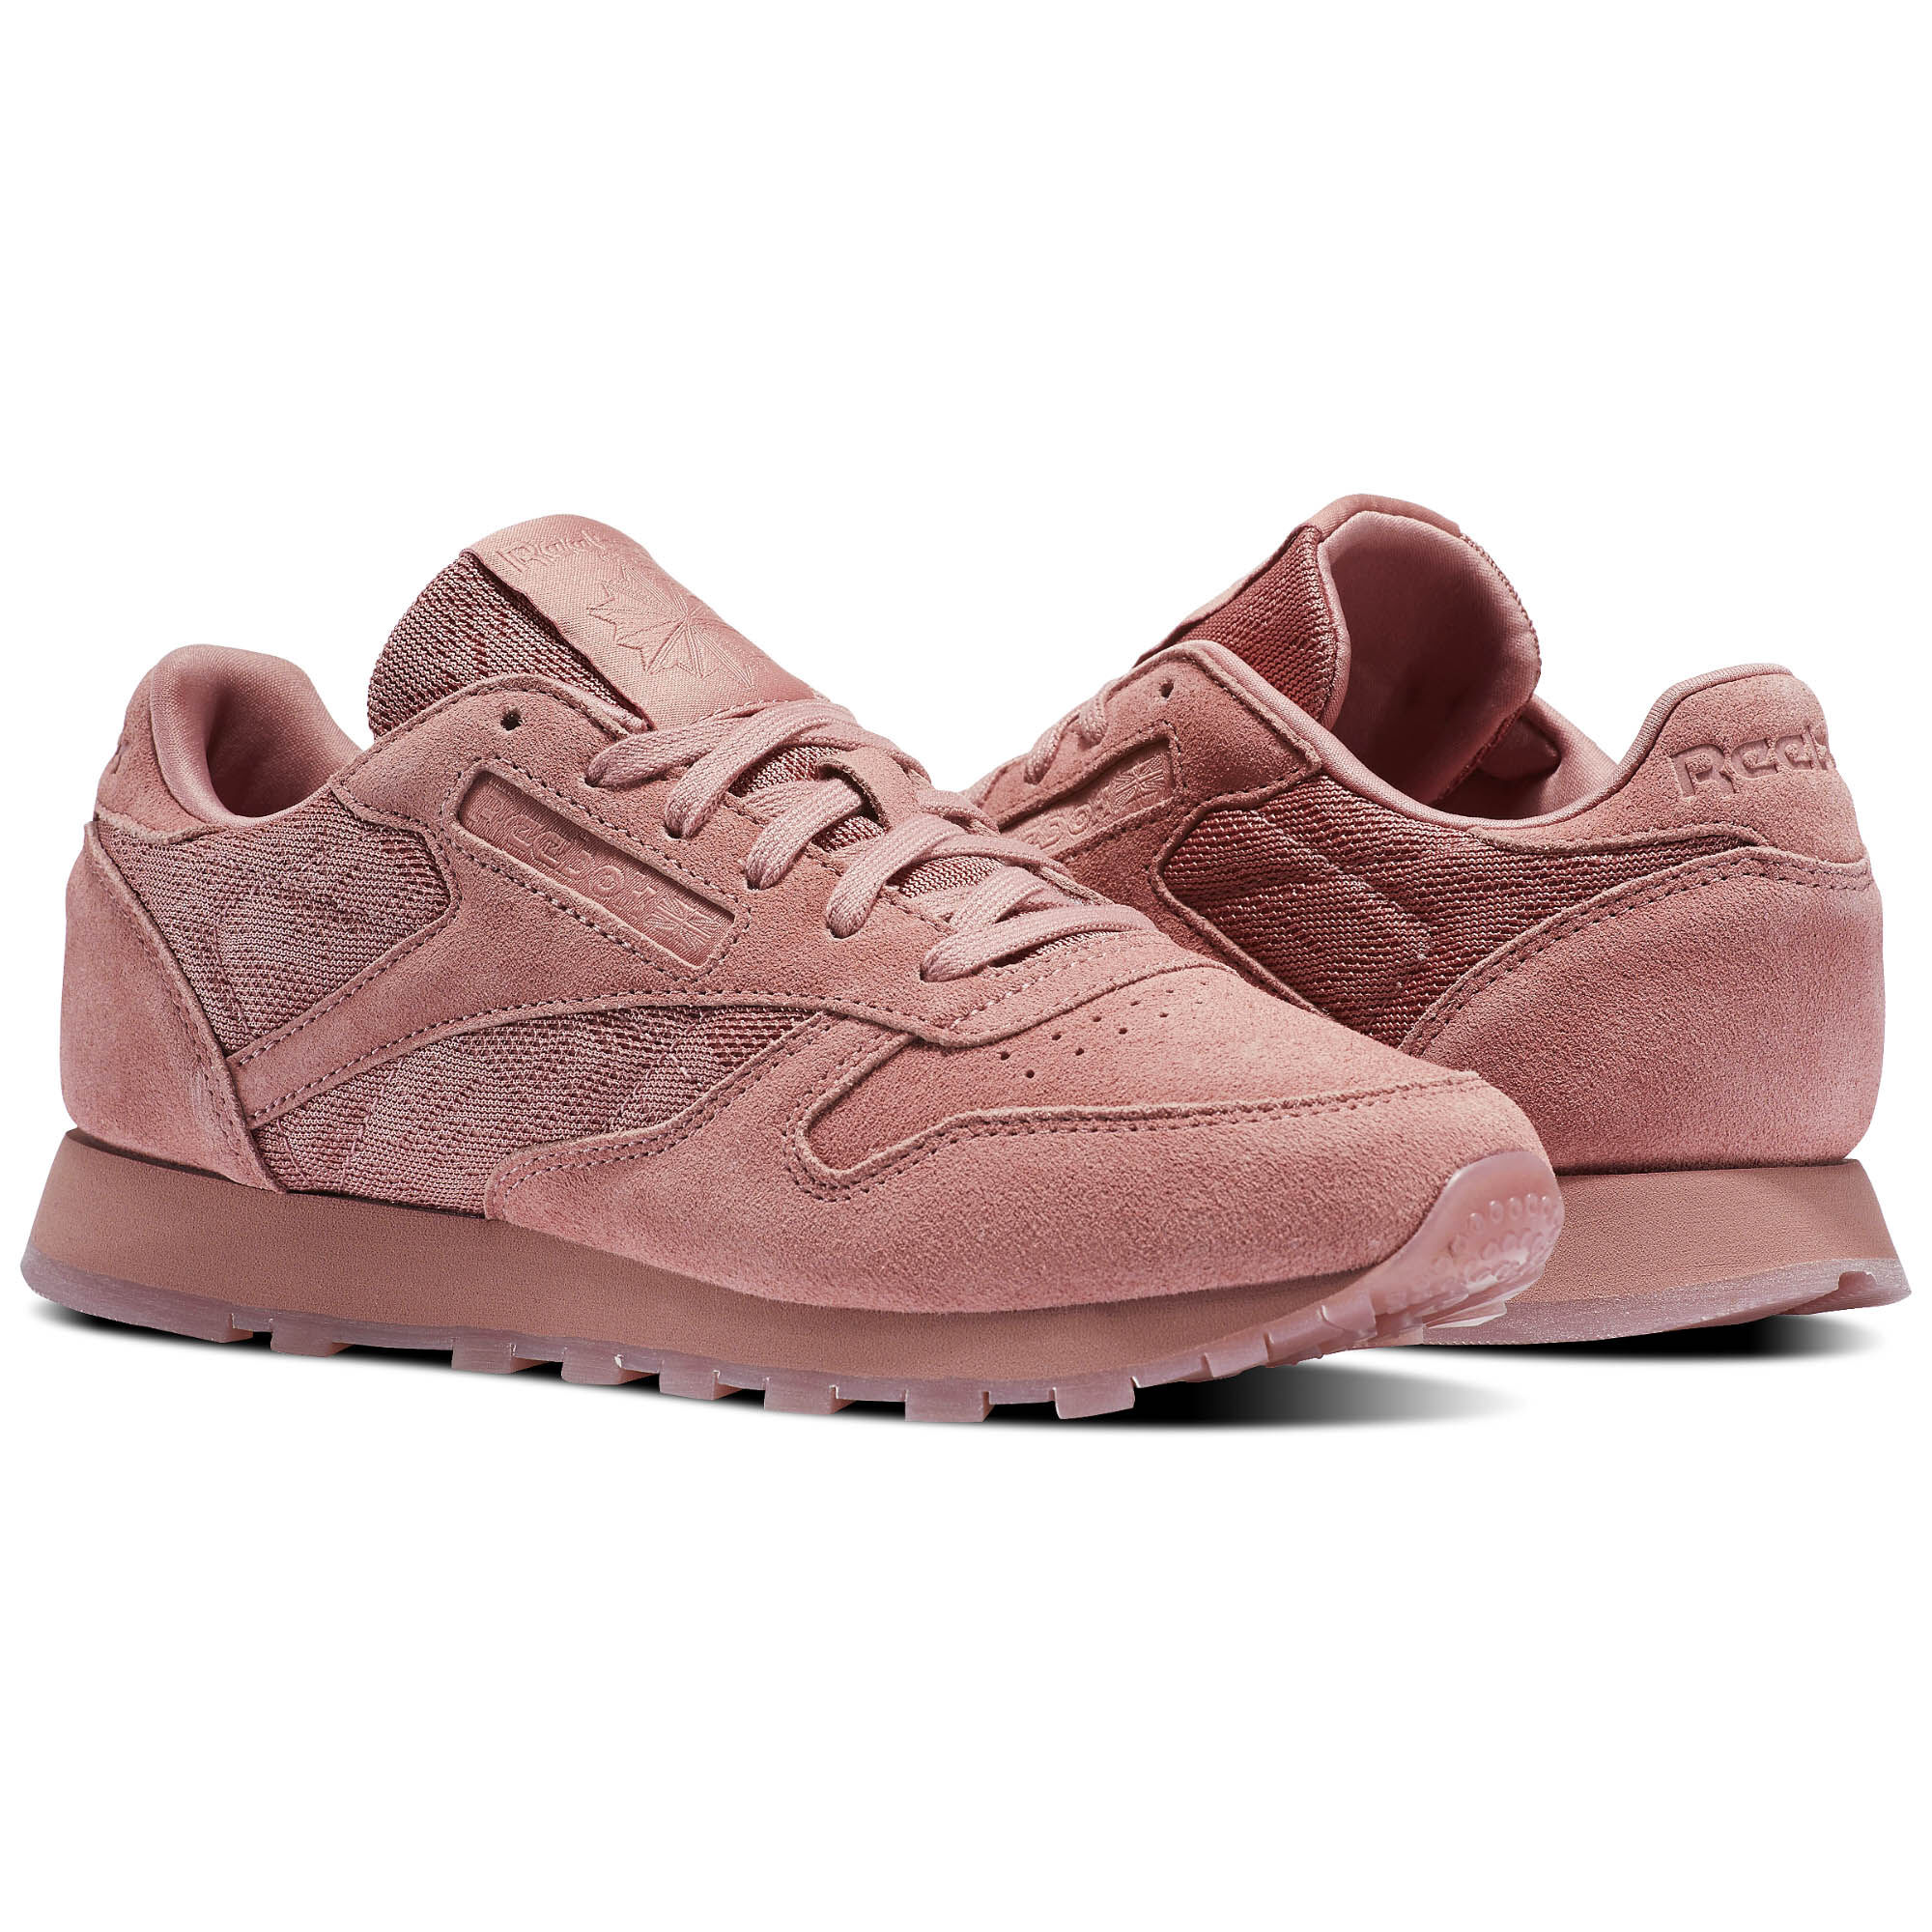 Reebok Sport Chaussures Classic Leather Lace - Ref. BS6523 Reebok Sport soldes FpZl1ZF